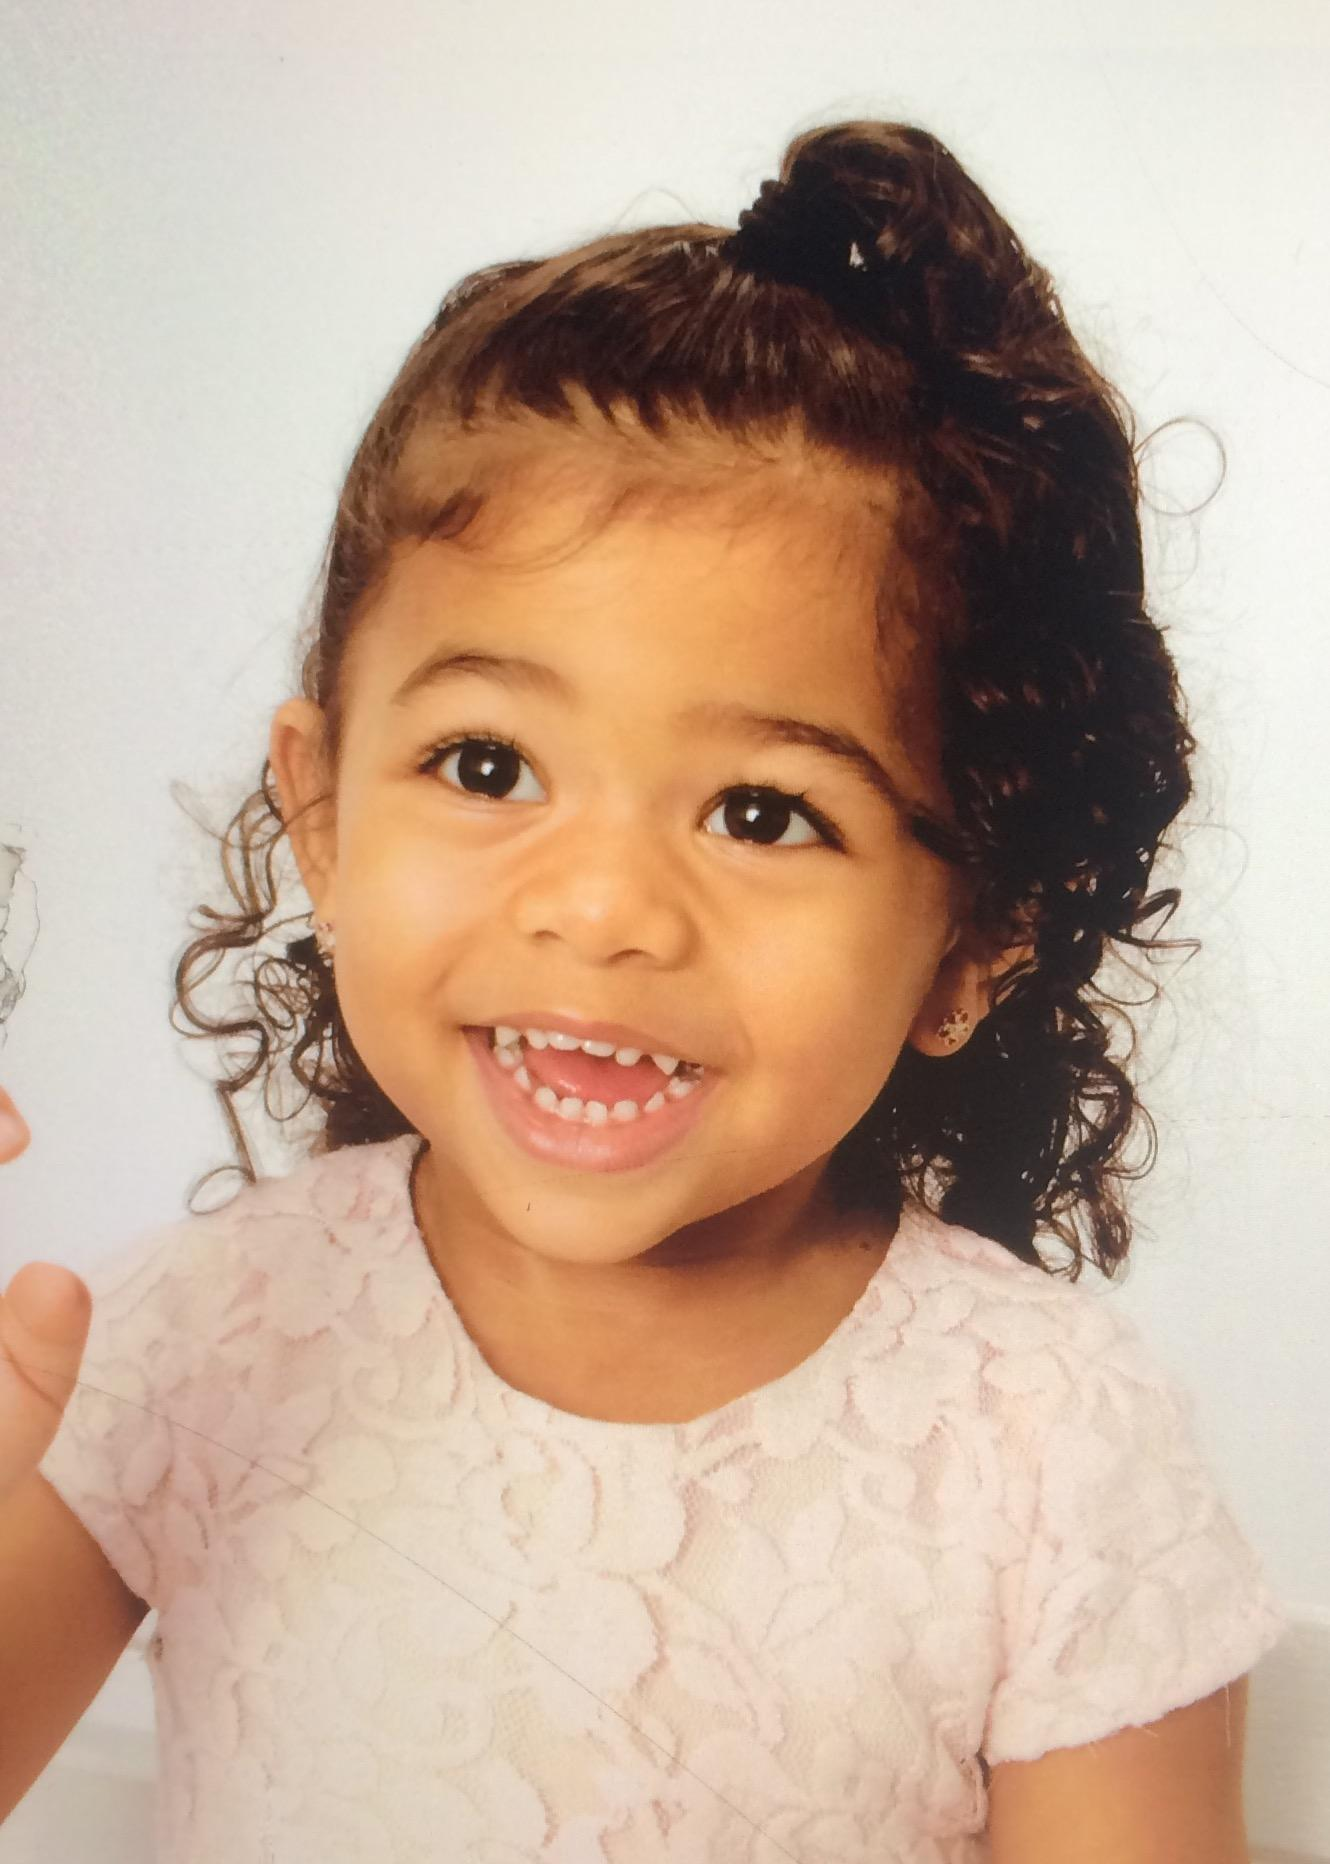 Manchester Police: Missing 2-Year-Old Girl Found Alive | New